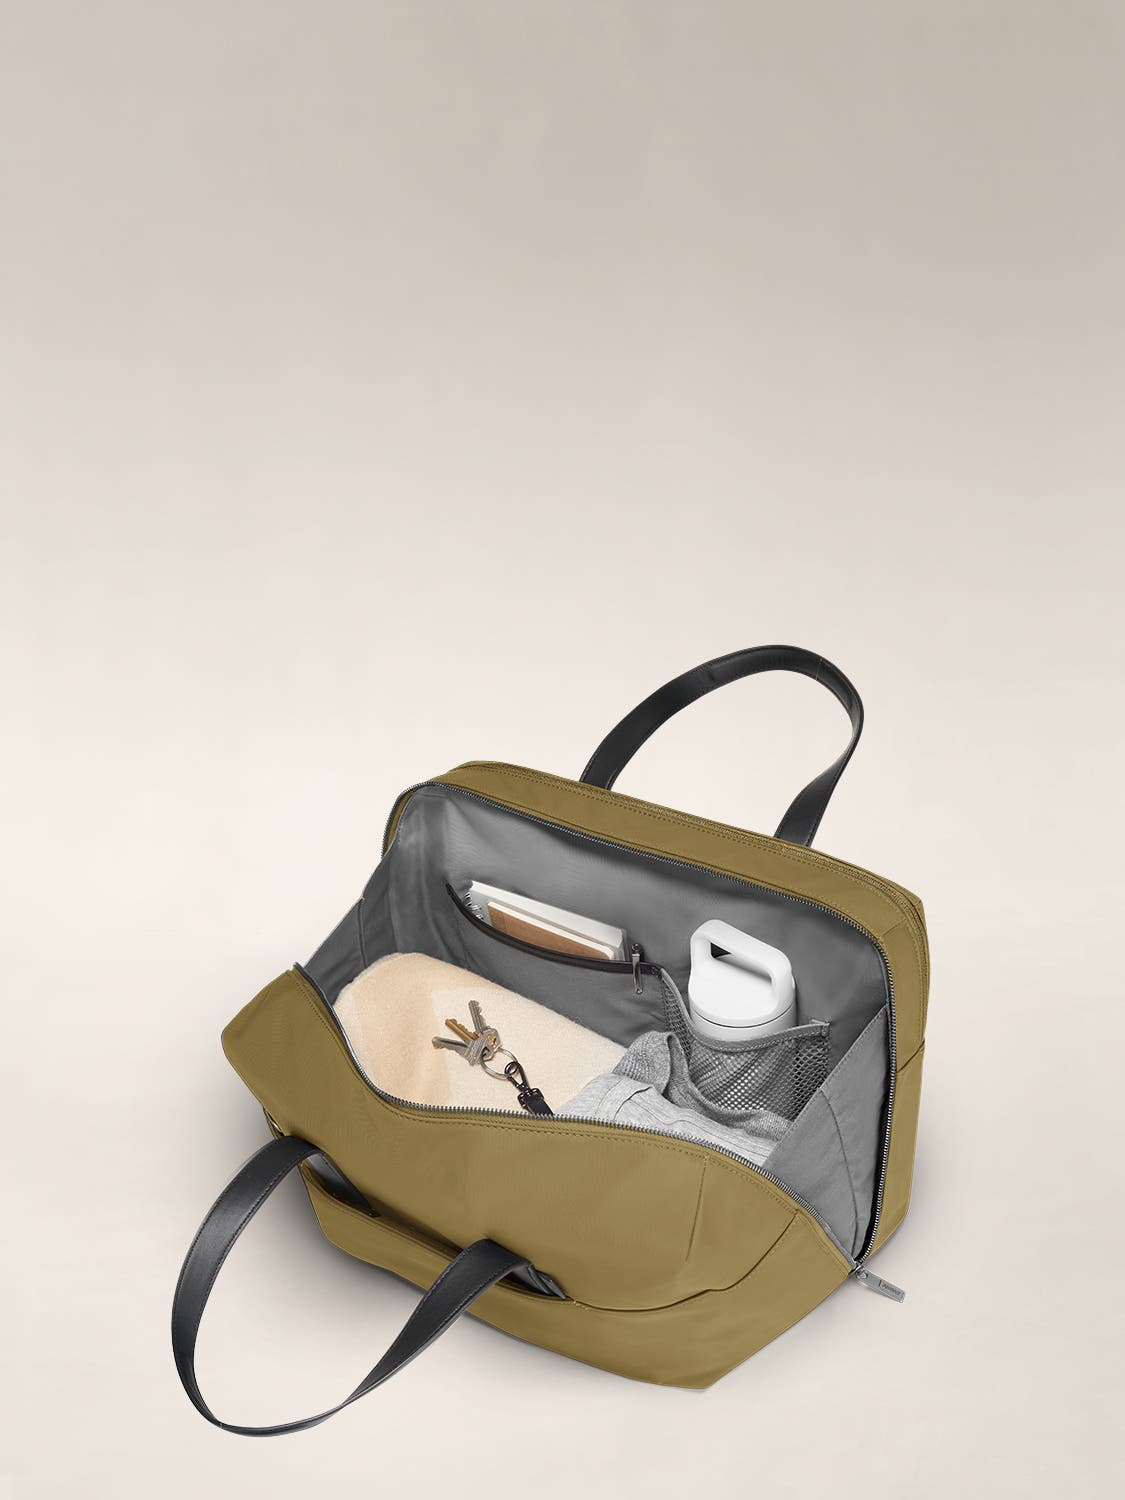 Open view of a Moss duffle bag with brown interior packed and organized with clothes, documents and water bottle in various internal pockets.